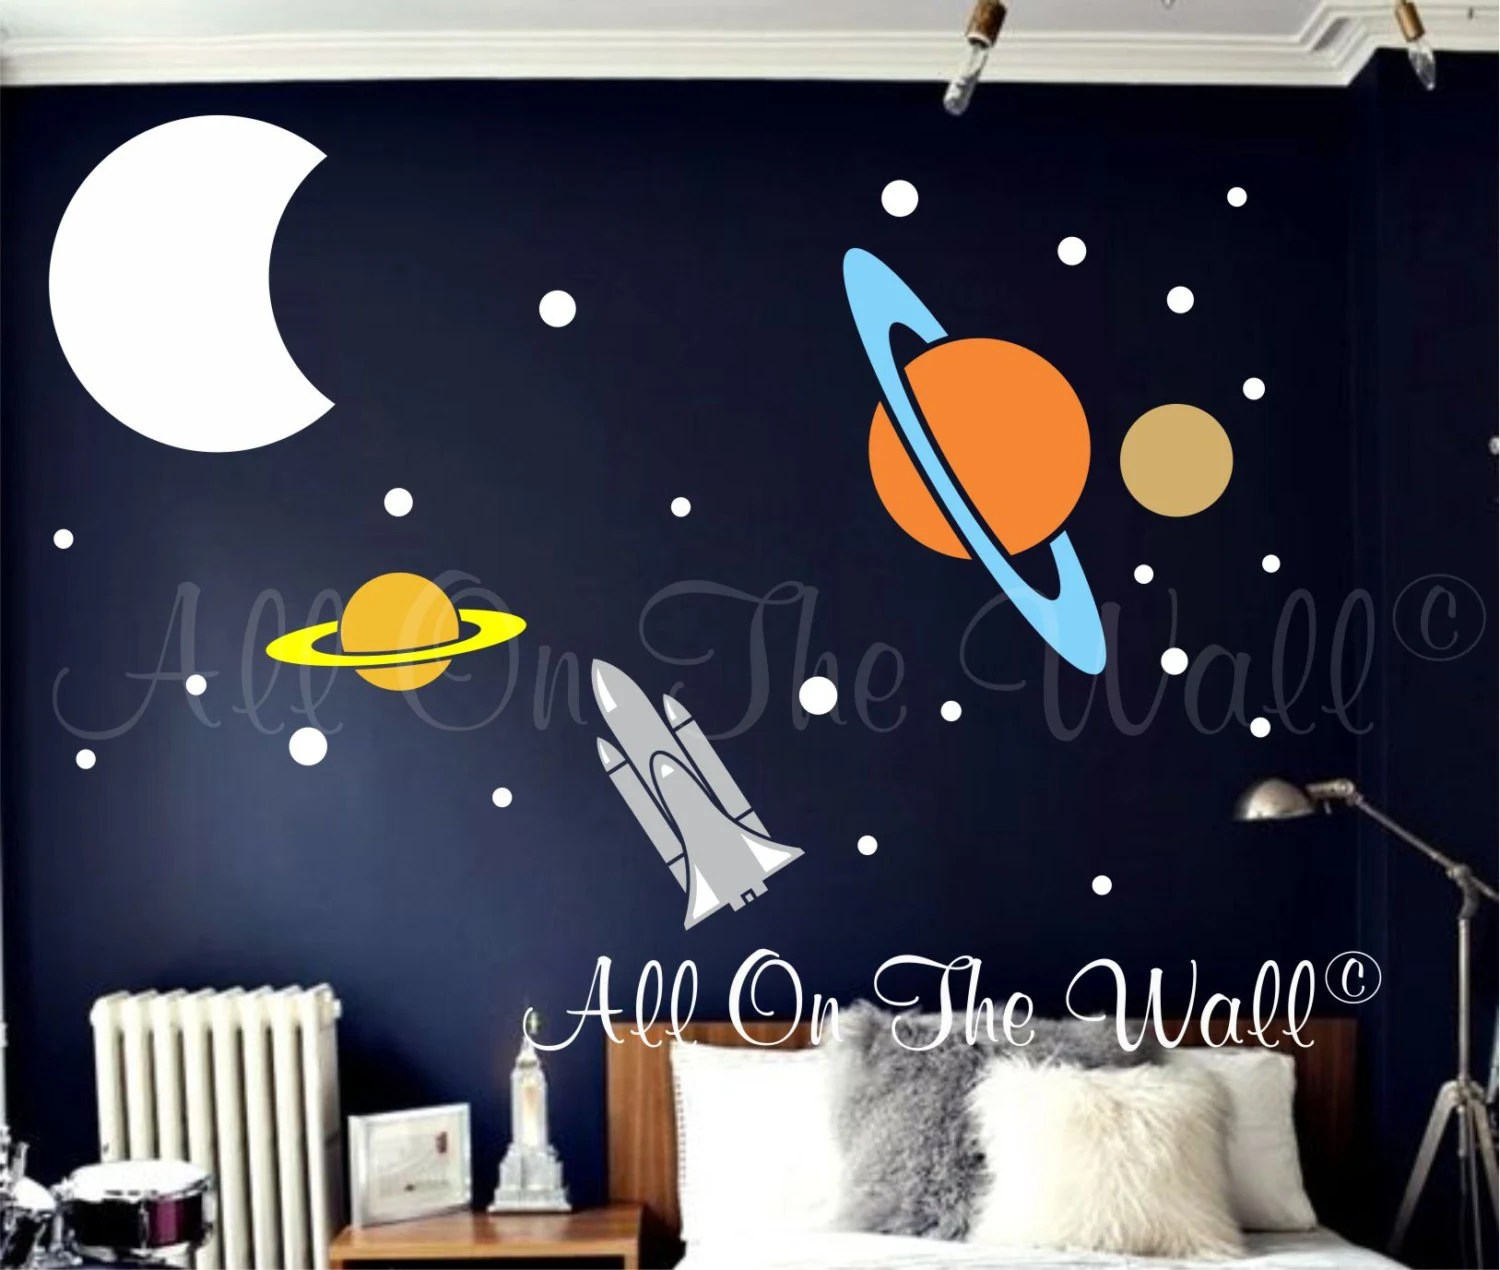 Planets Wall Art Planets Wall Decal Space Theme Decals Rocket Wall Decal Solar System Decals Boys Room Decals Outer Space Decor Vinyl Wall Art For Kids